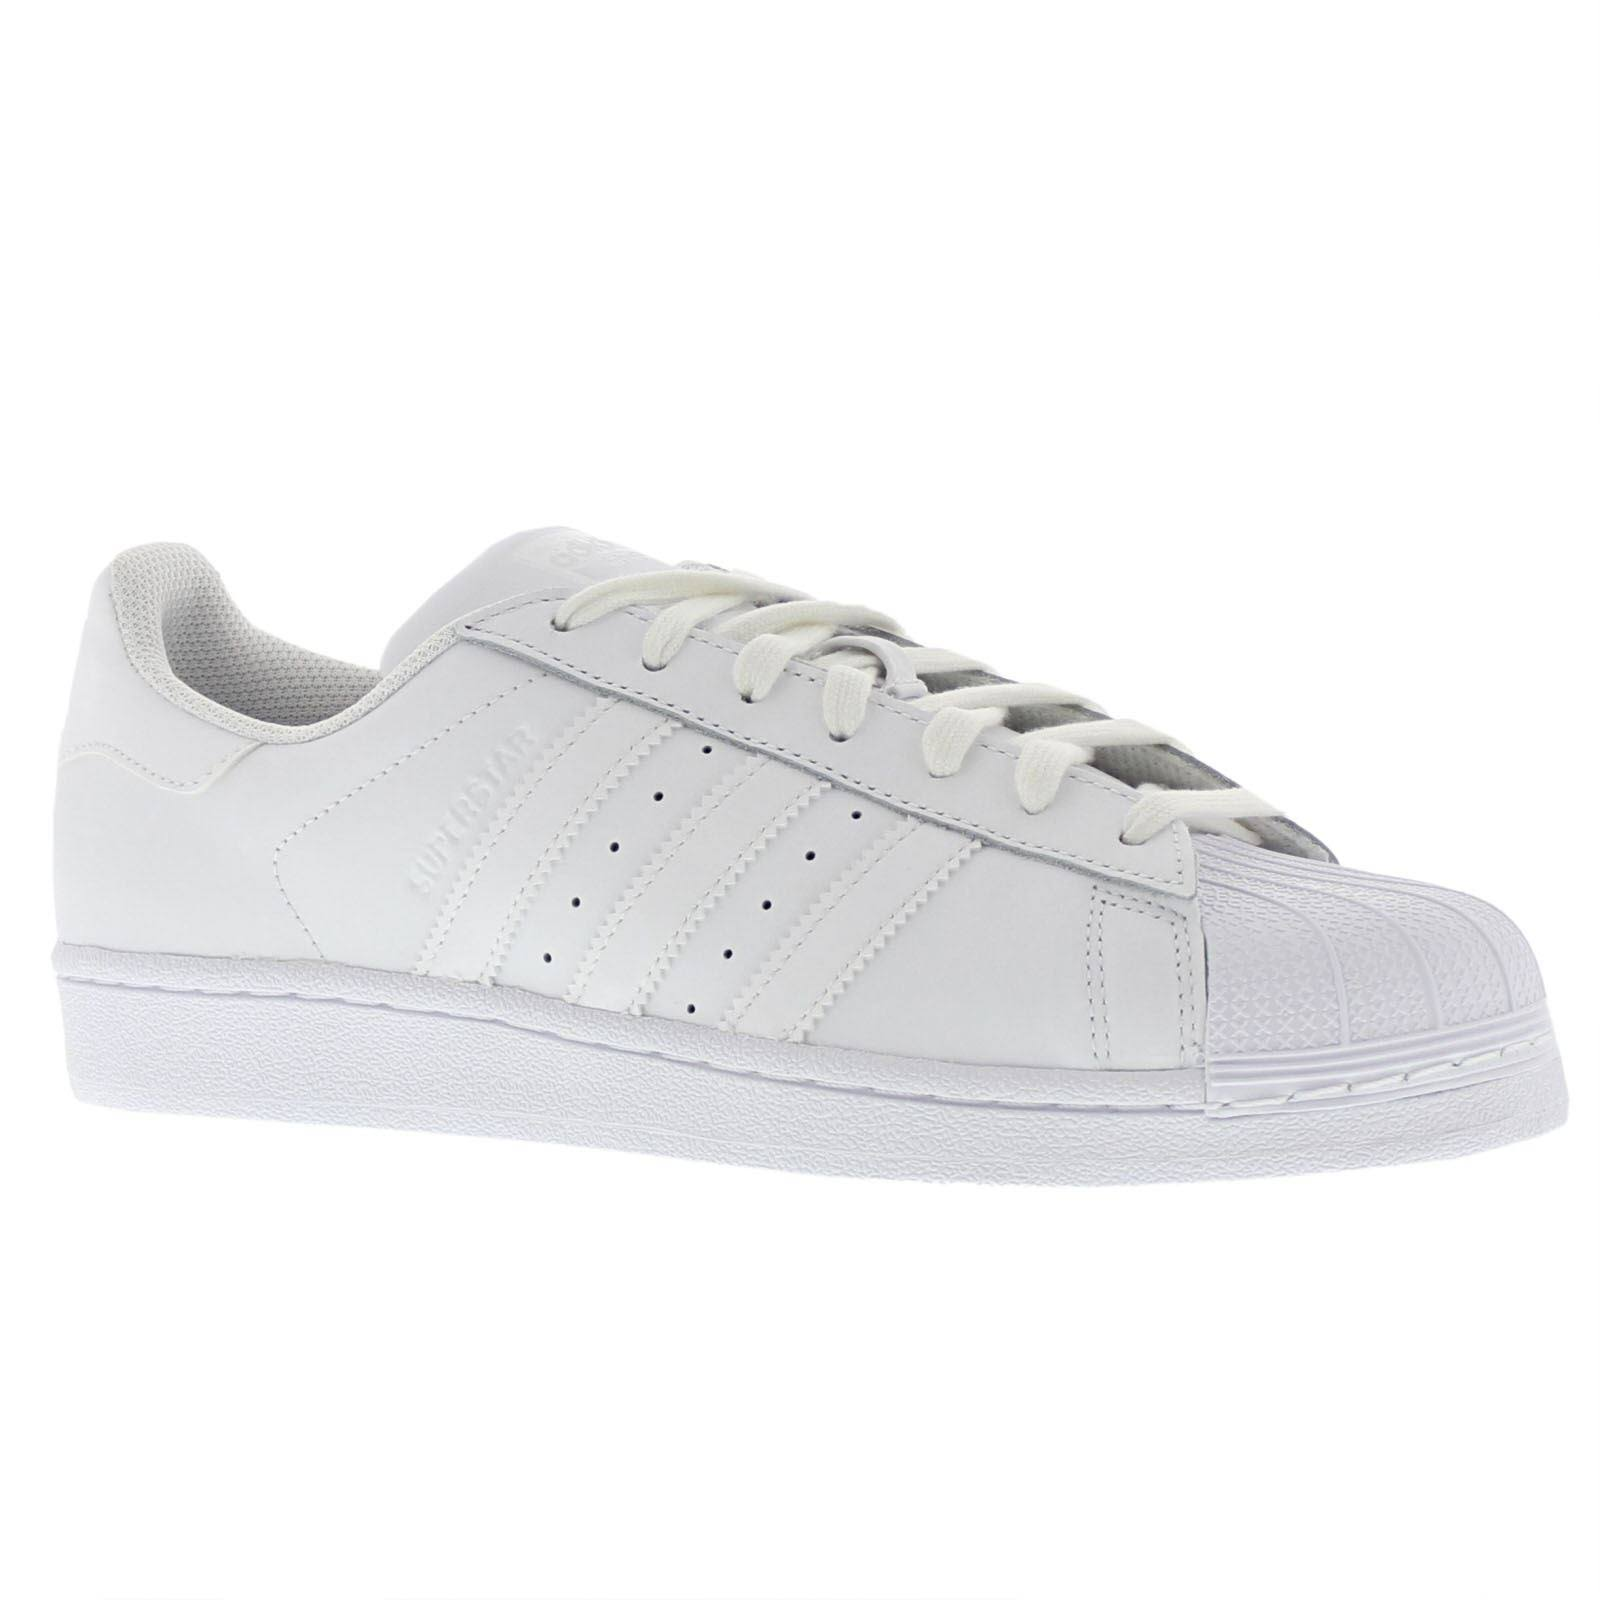 Adidas - Superstar White / 7.5